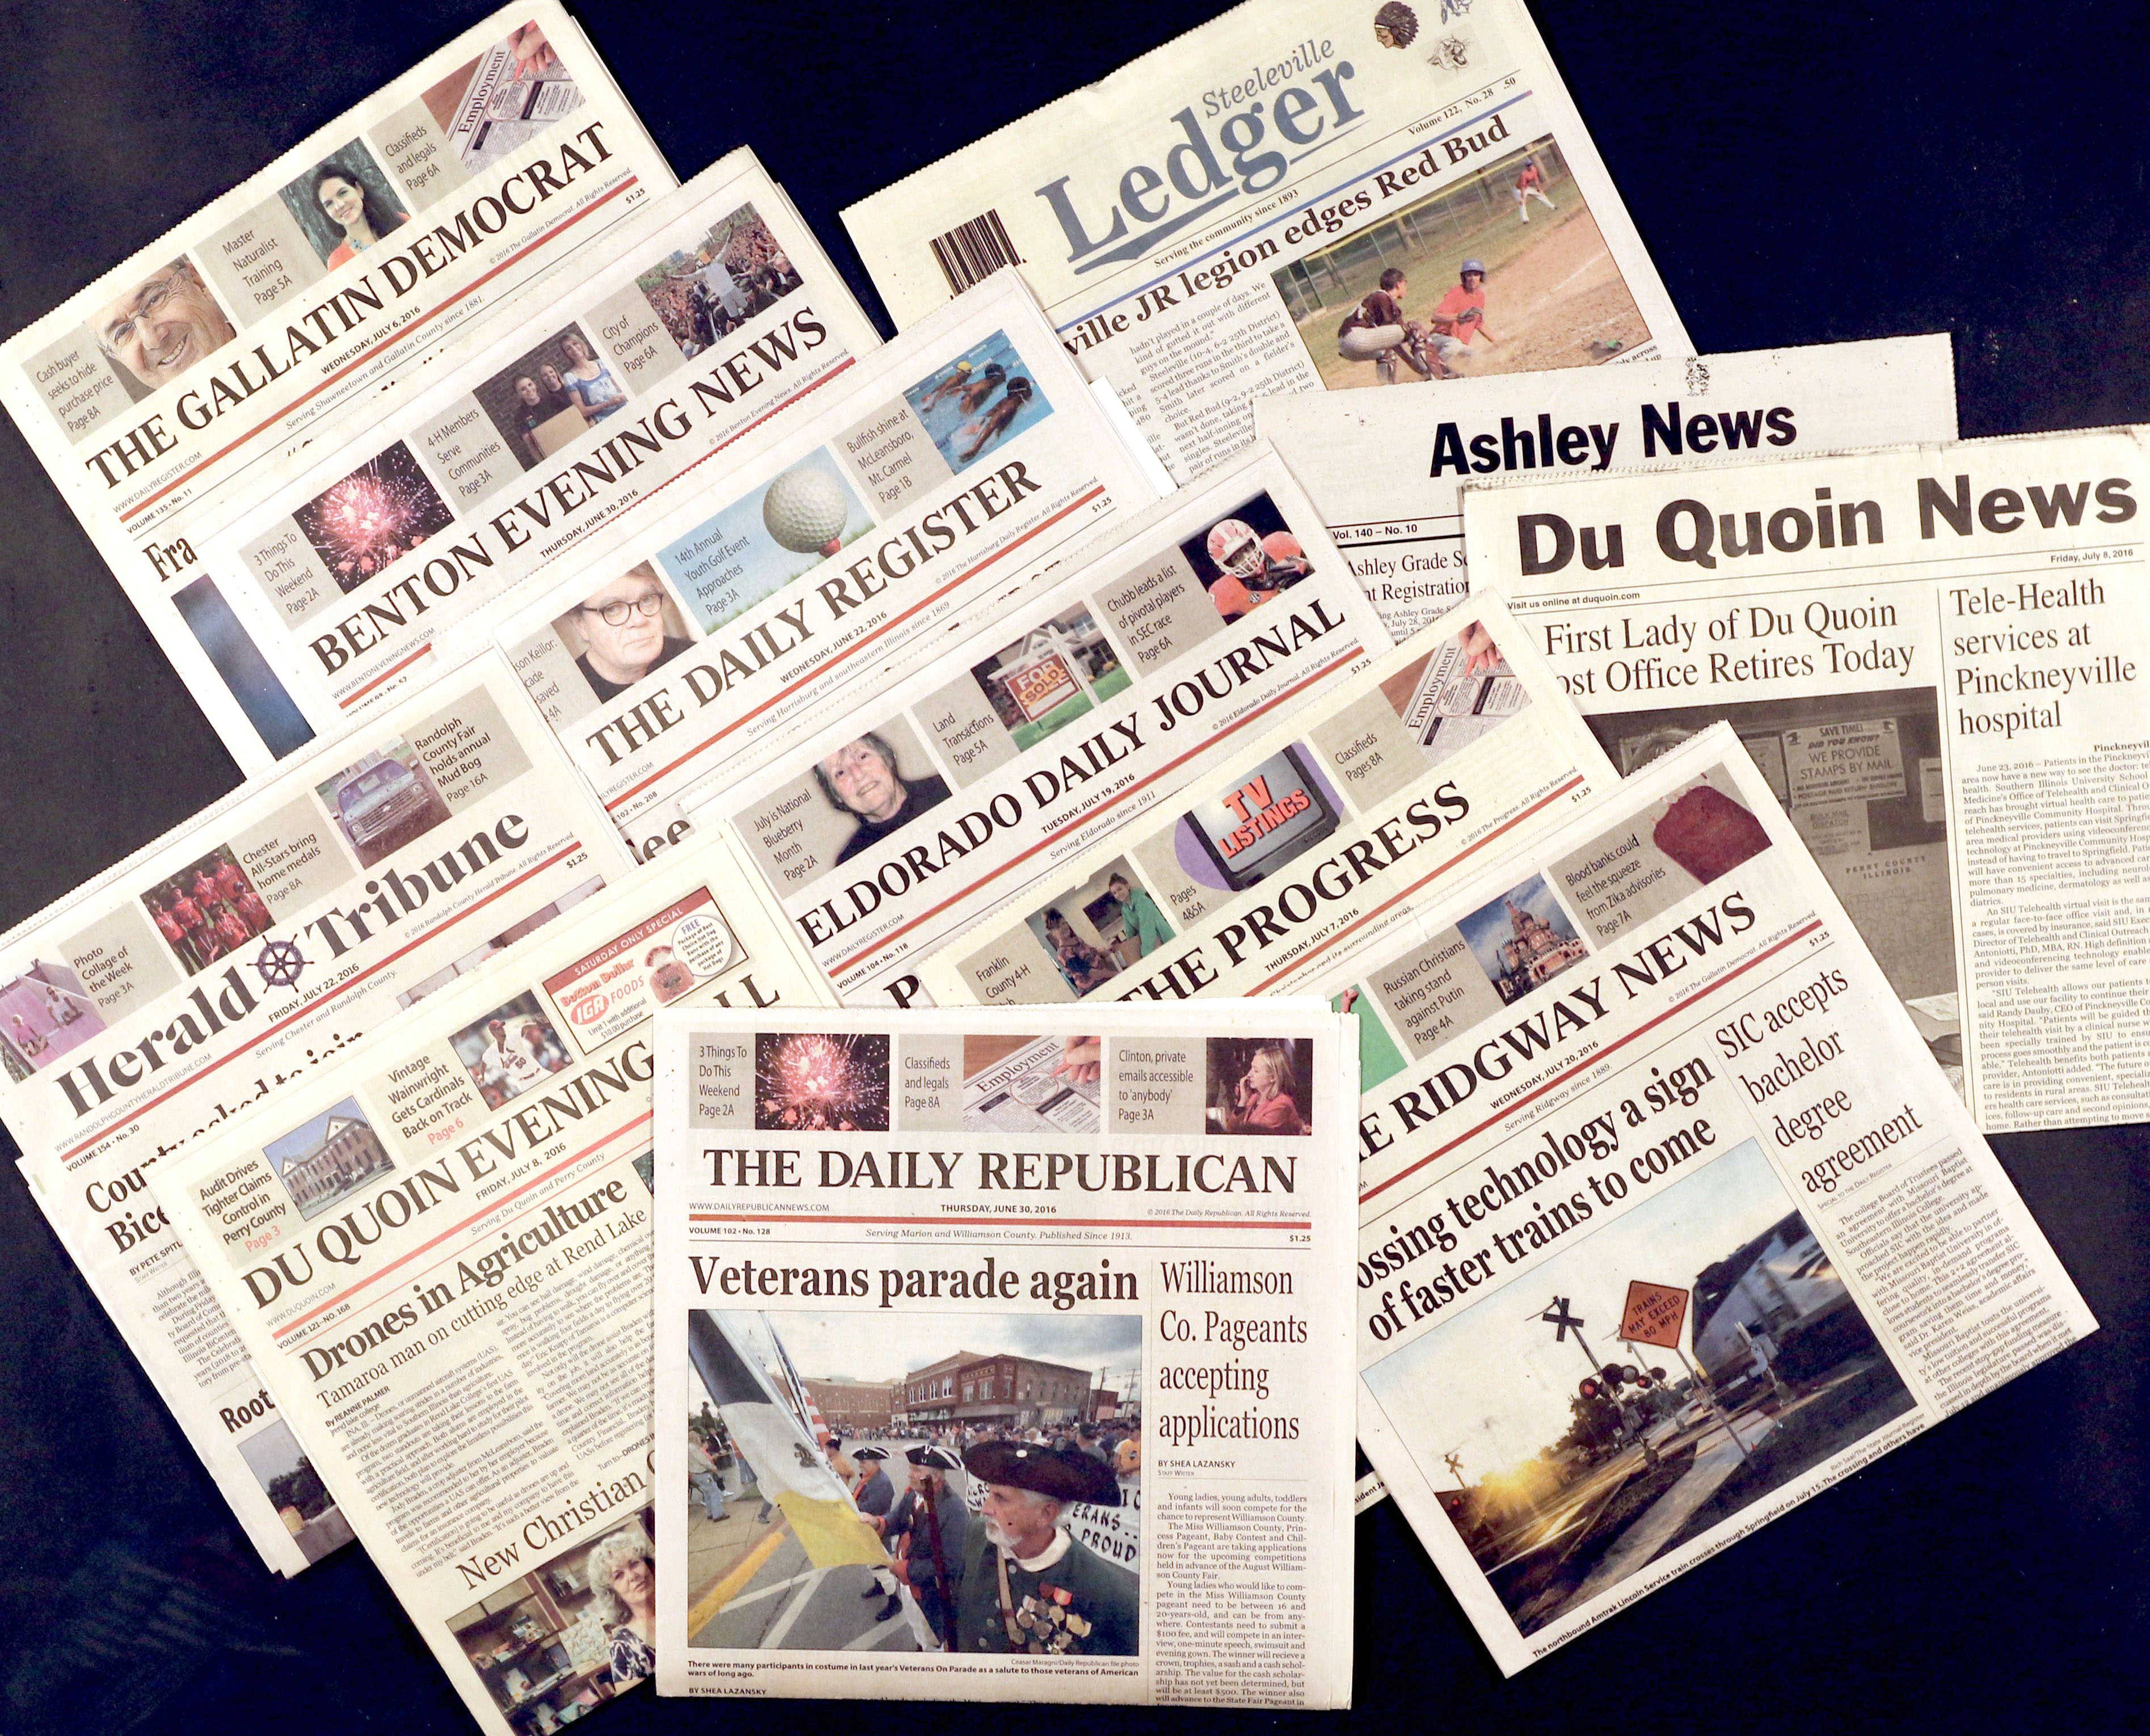 Daily Herald owner to buy 12 newspapers in Southern Illinois from GateHouse Media